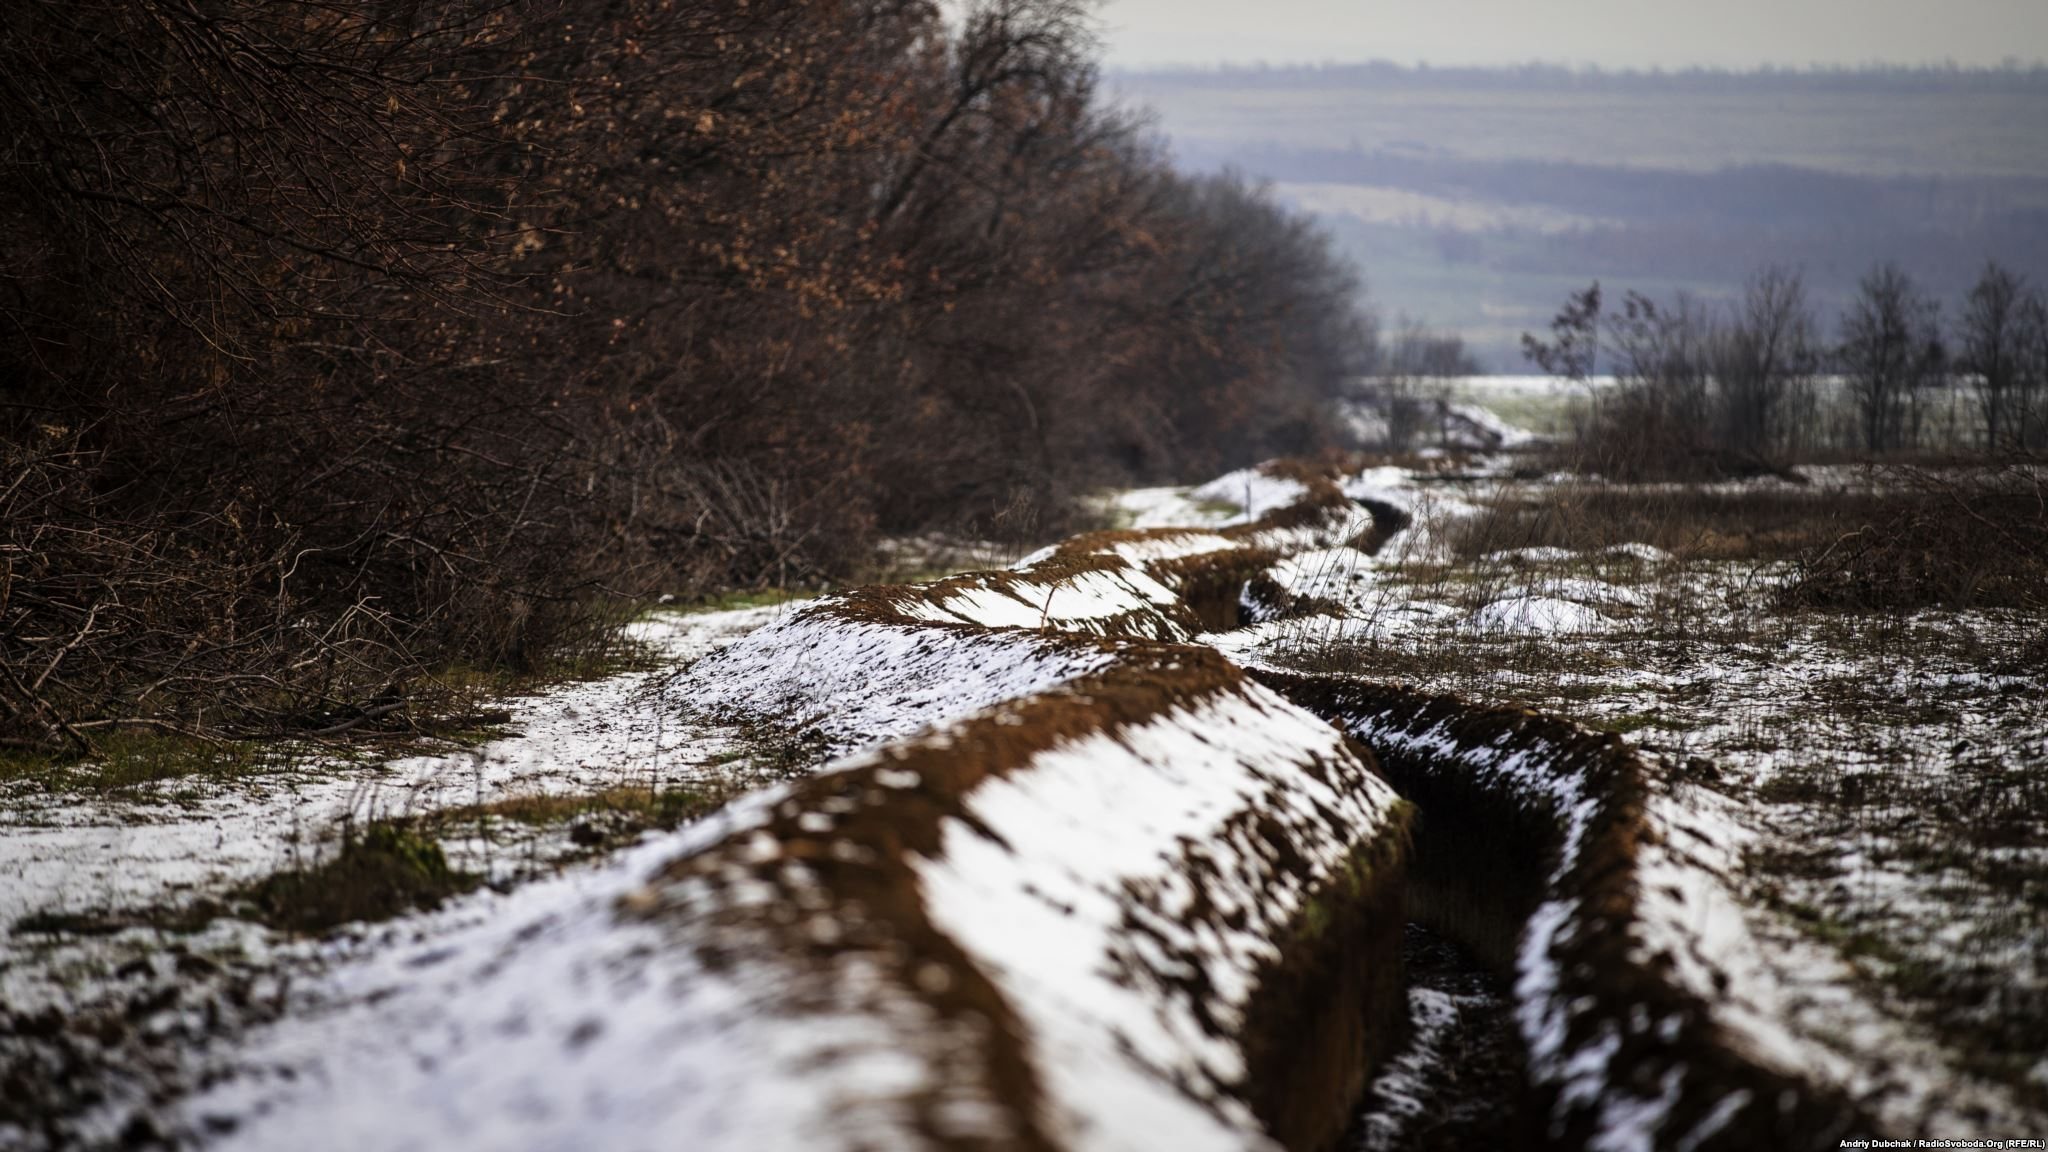 Trench lines of Ukrainian military positions, near Popasna (photo by ukrainian military photographer Andriy Dubchak)